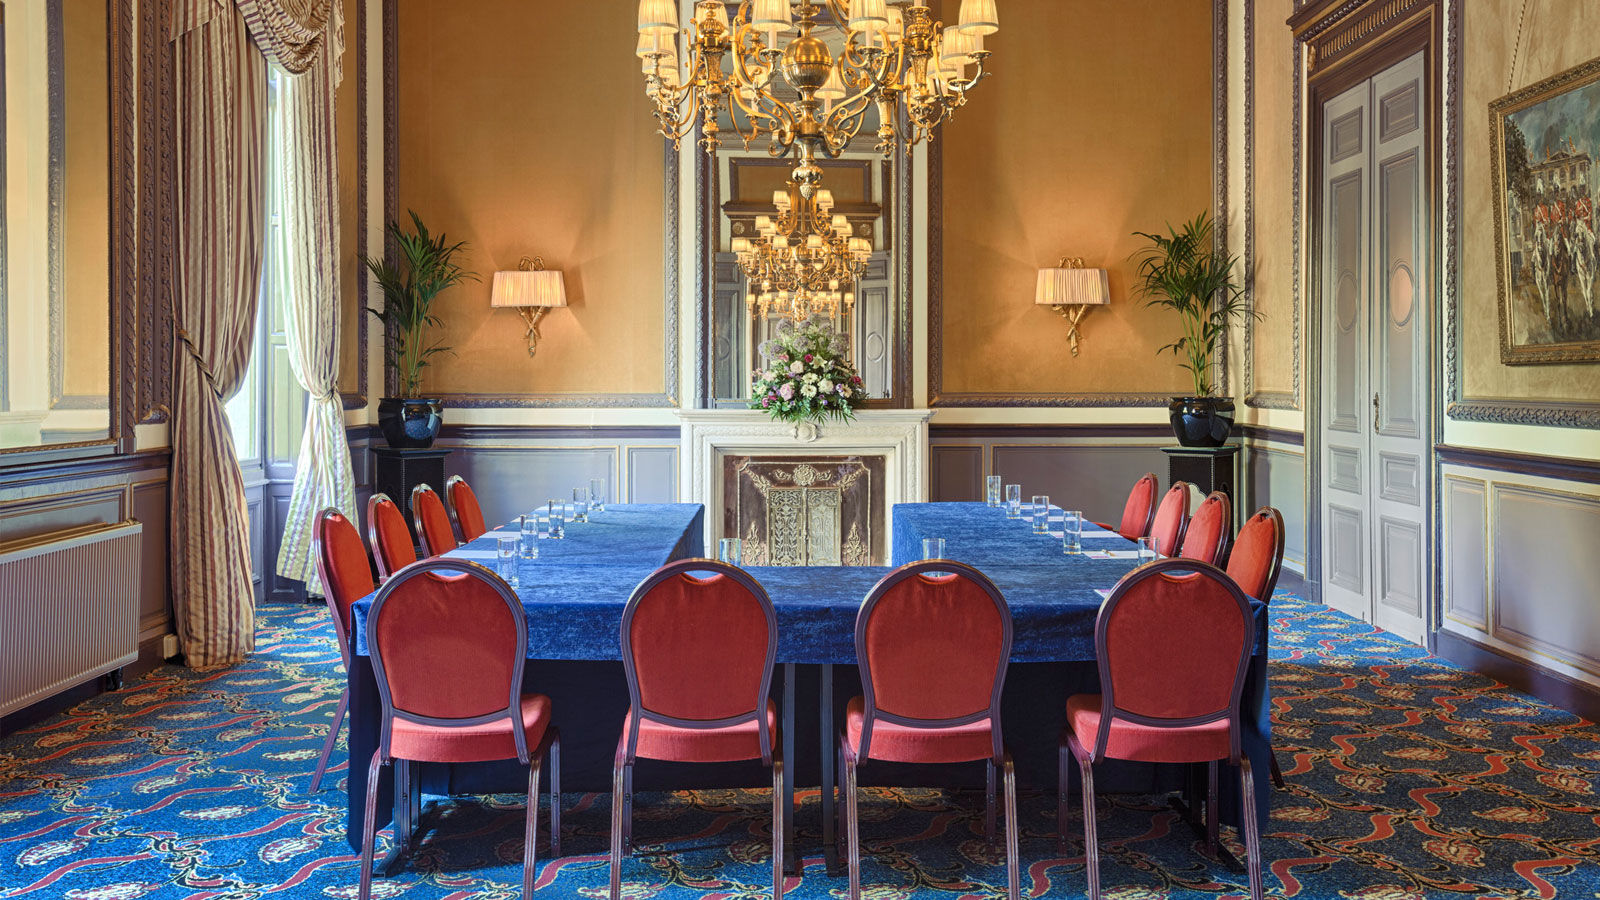 Hotel des indes meeting room